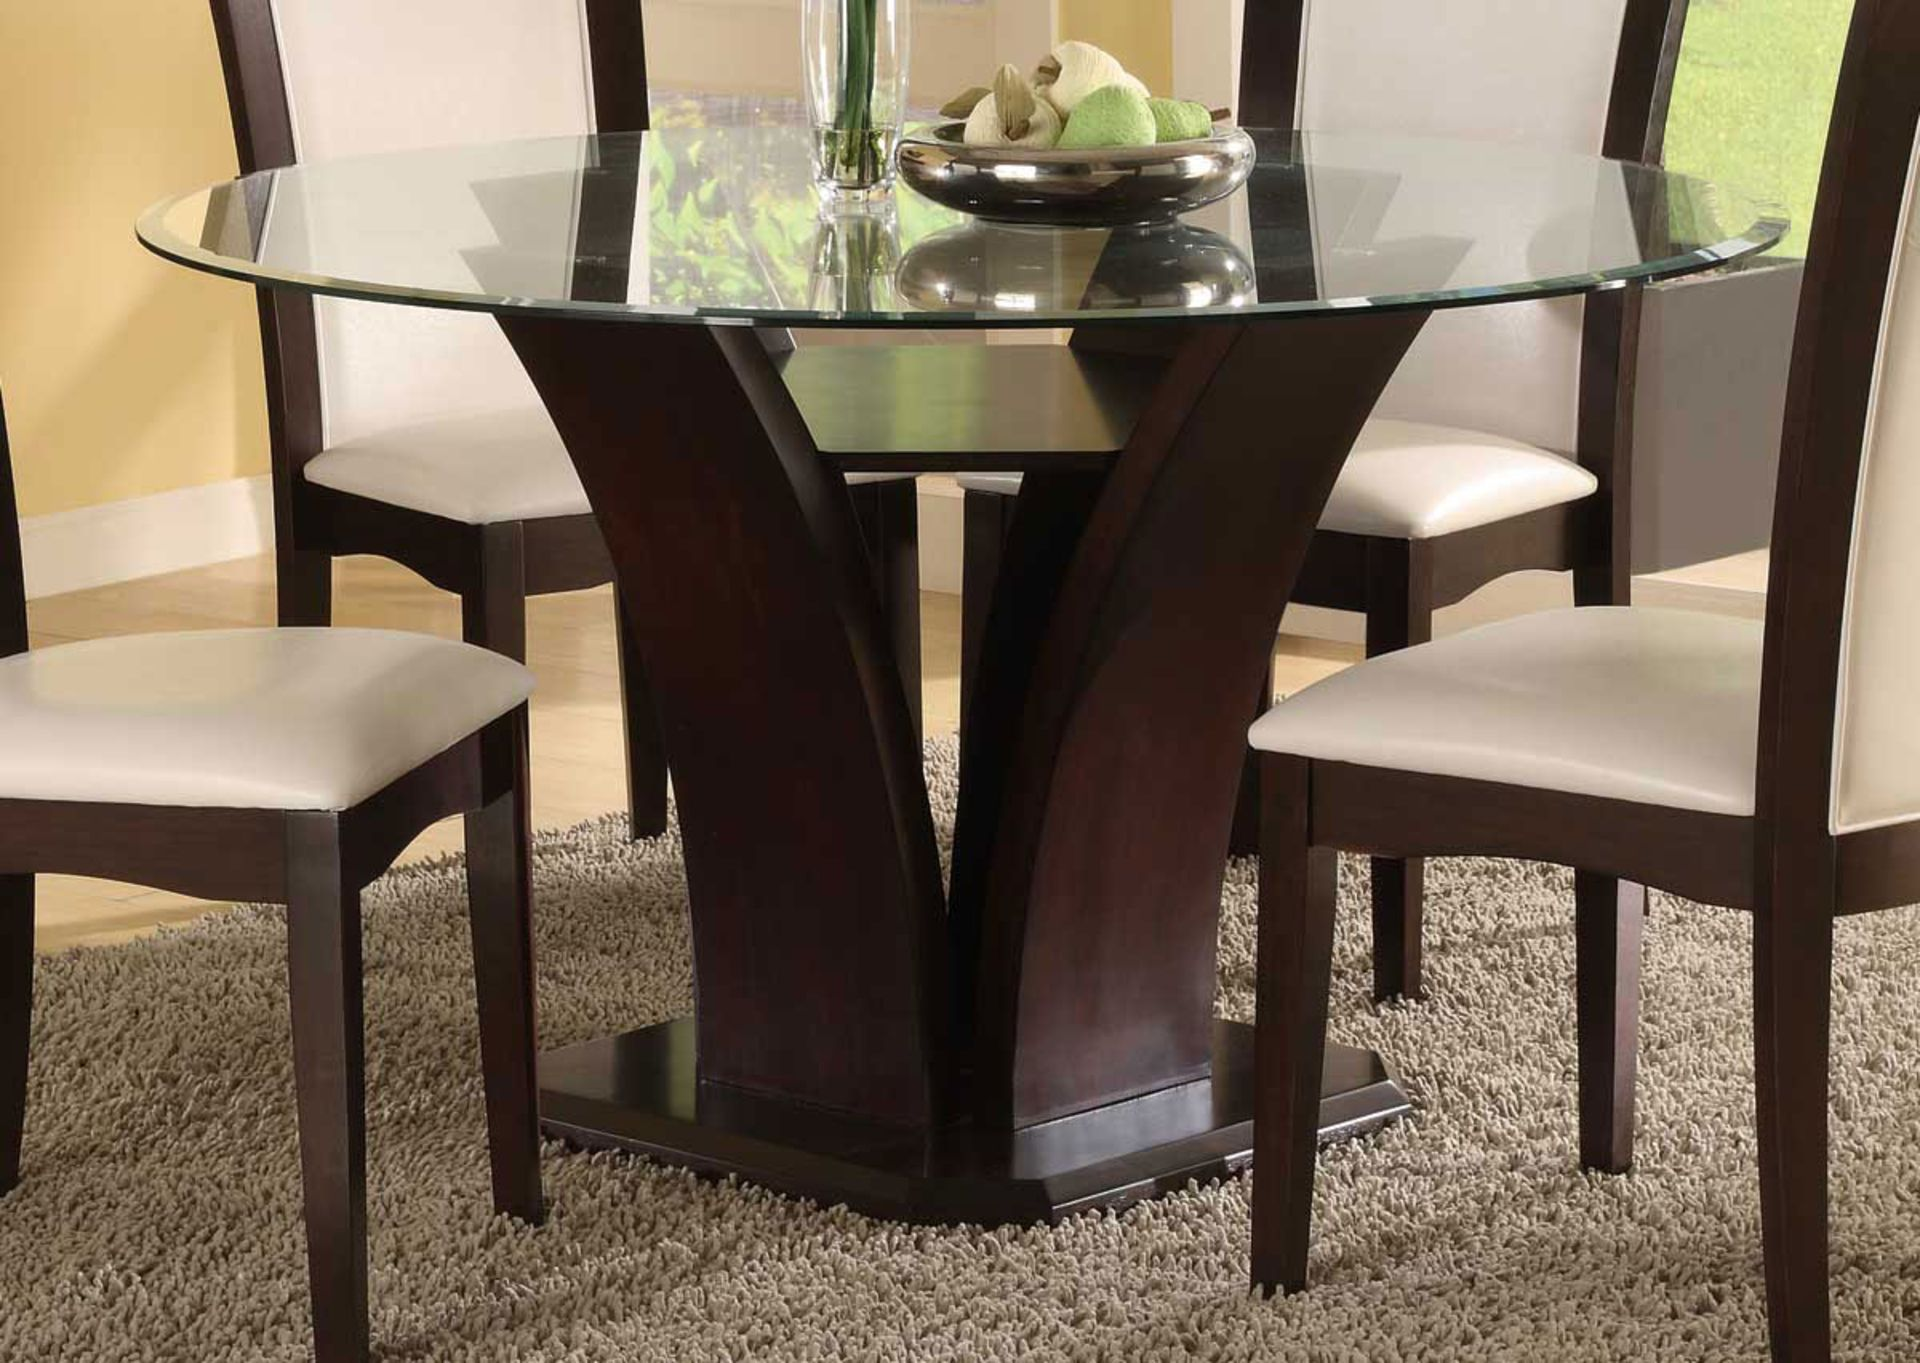 designs bianca glass top dining table legged inspiring ideas